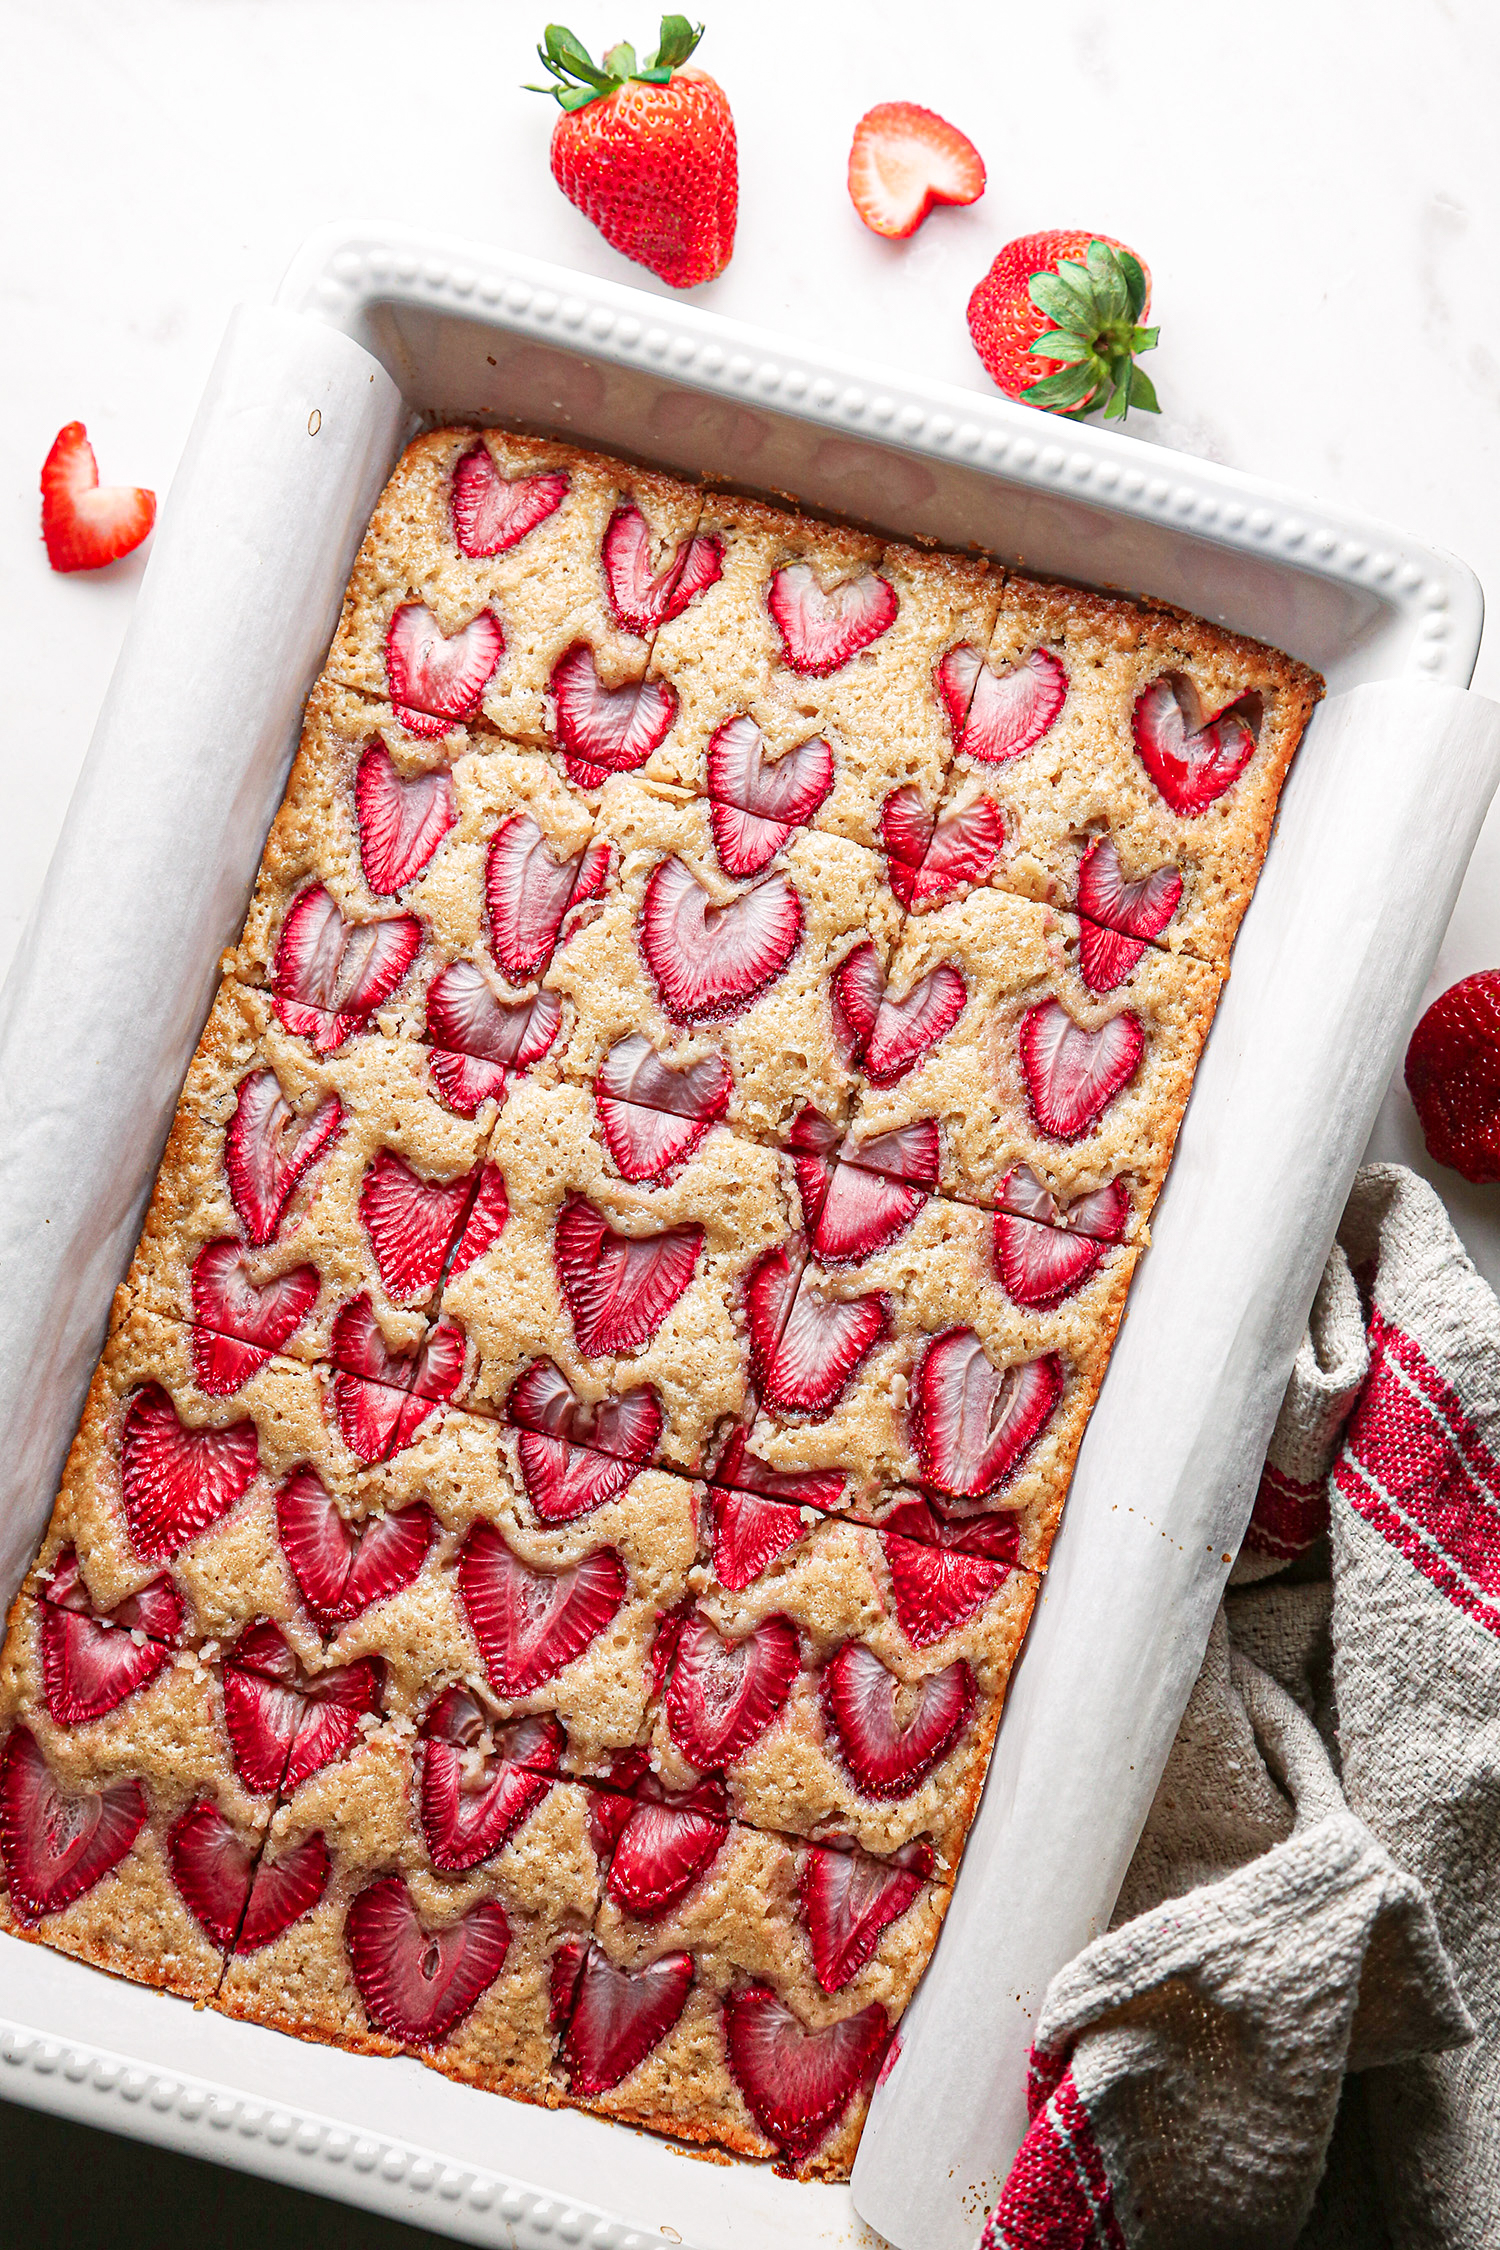 Simple Strawberry Snack Cake | Vegan with Gluten-Free option